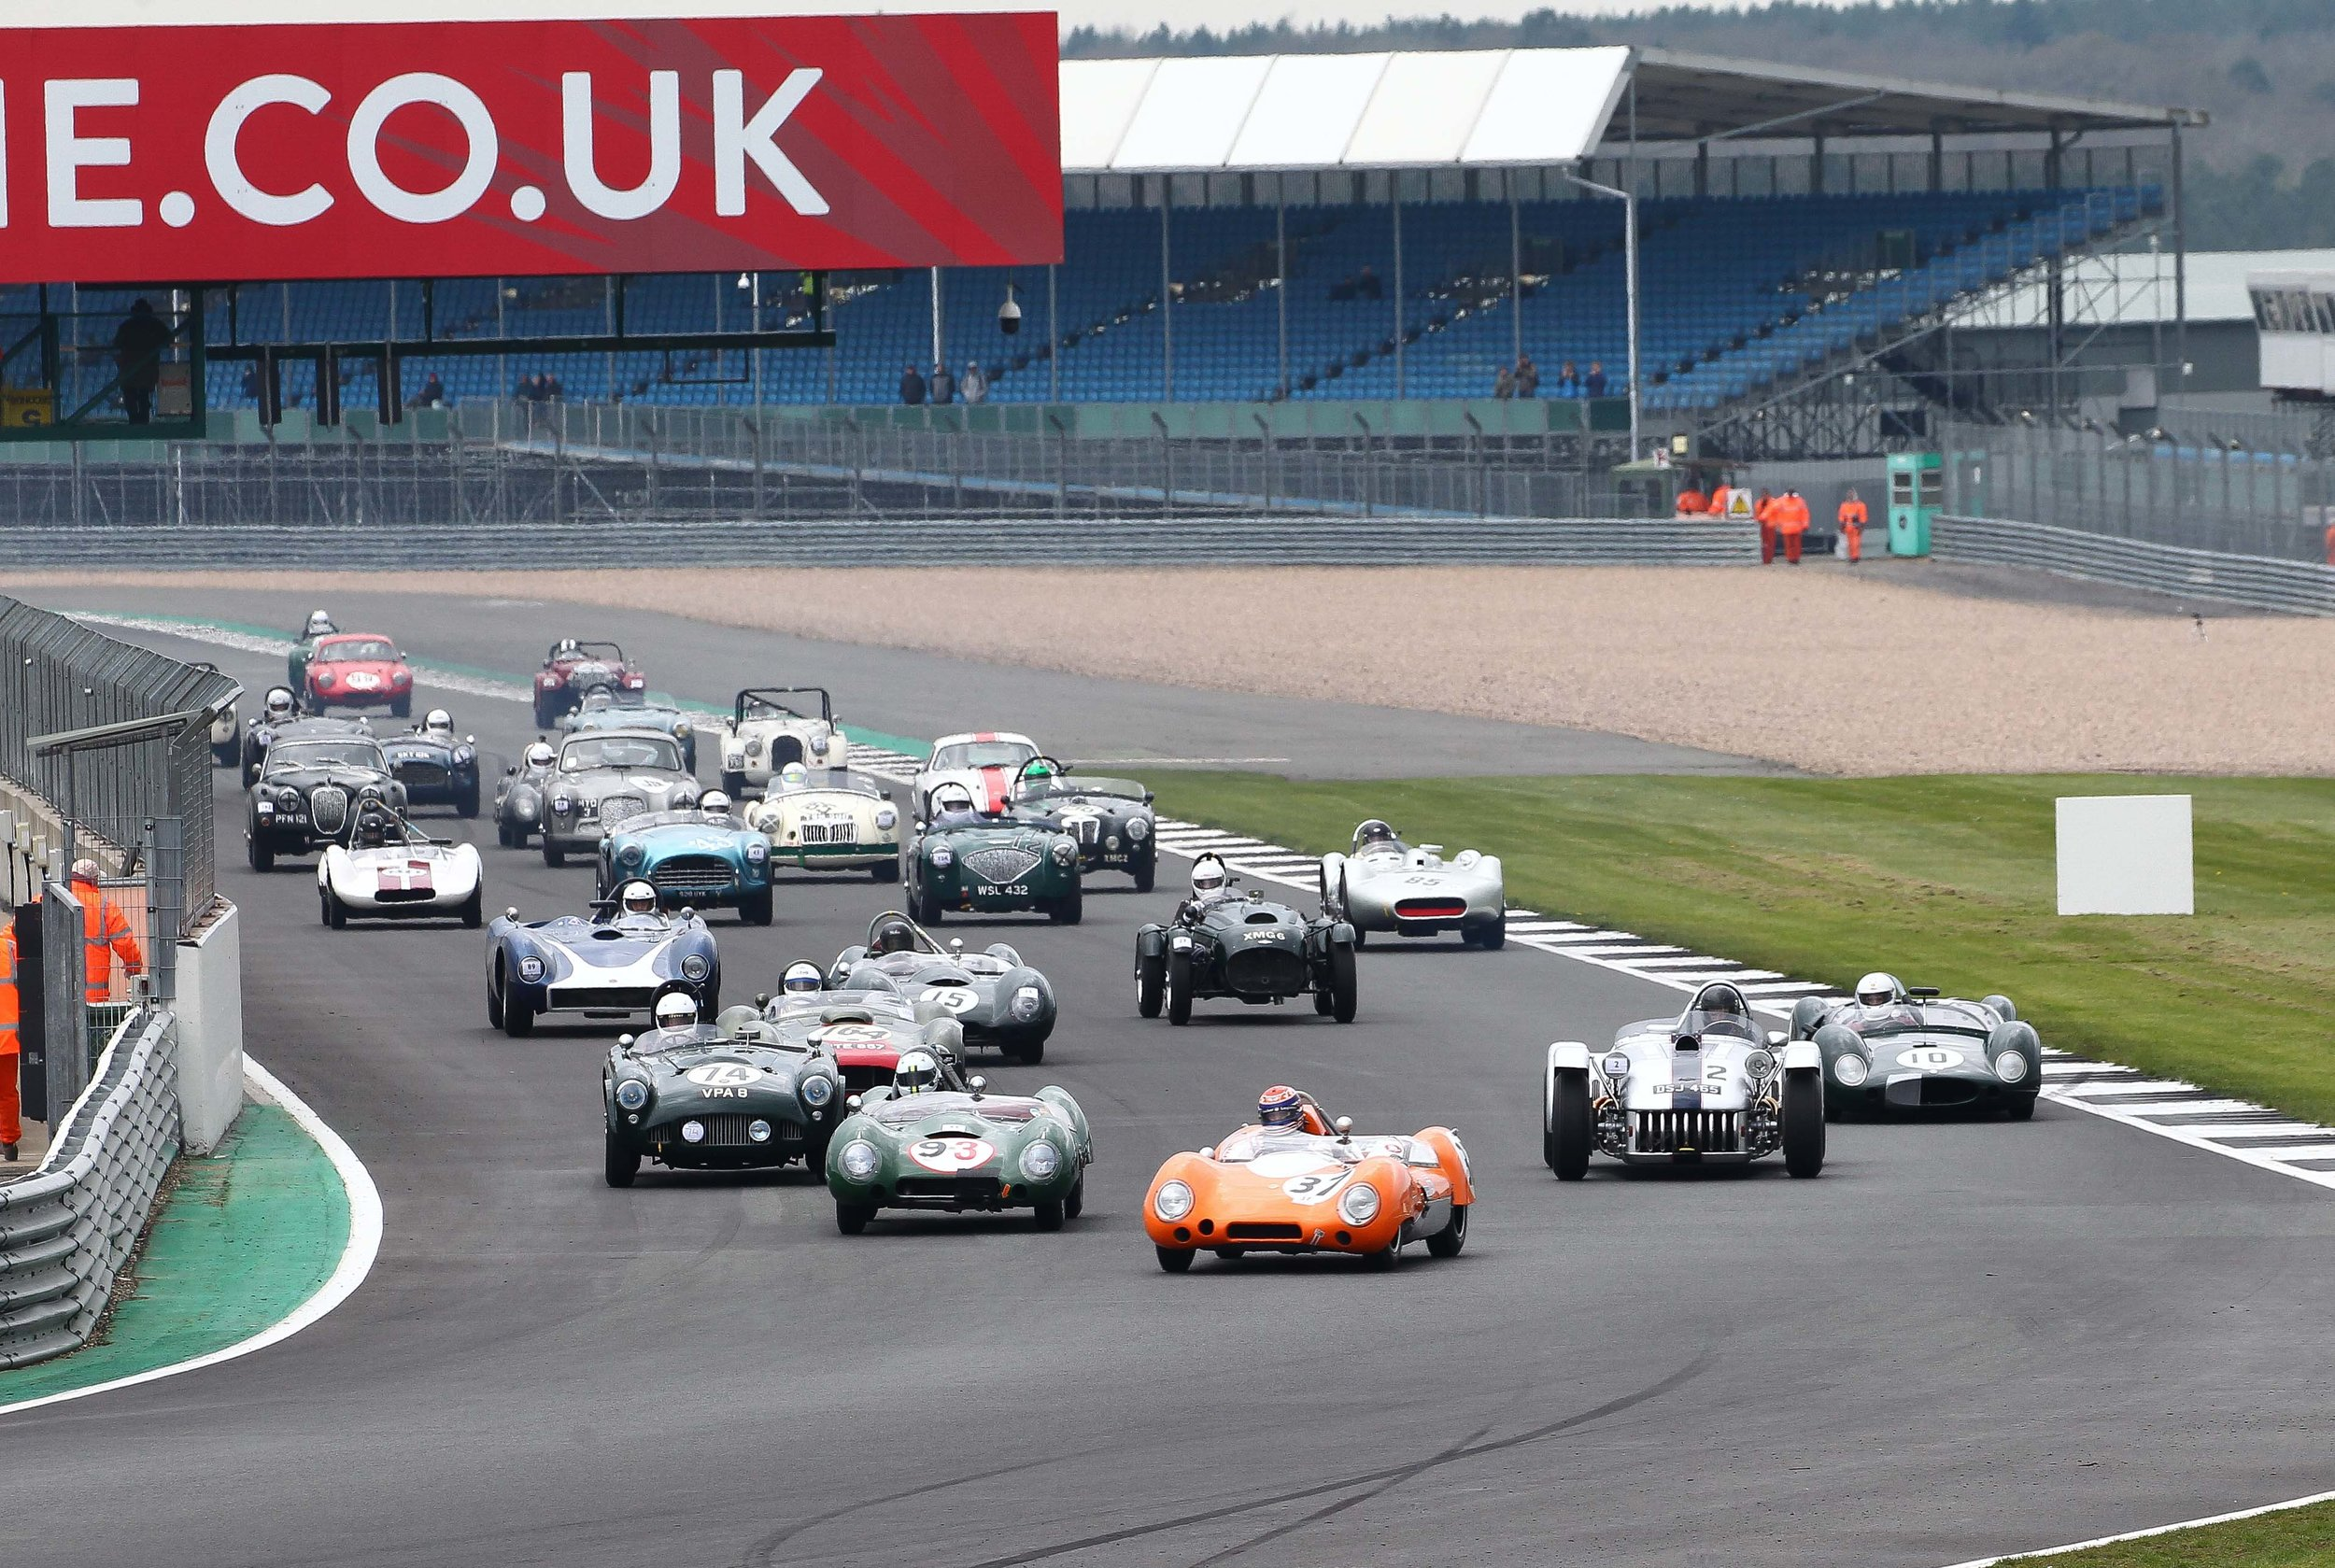 Philiip Walker (Lotus 15) leads the pack away at the start. Photo - Richard Styles